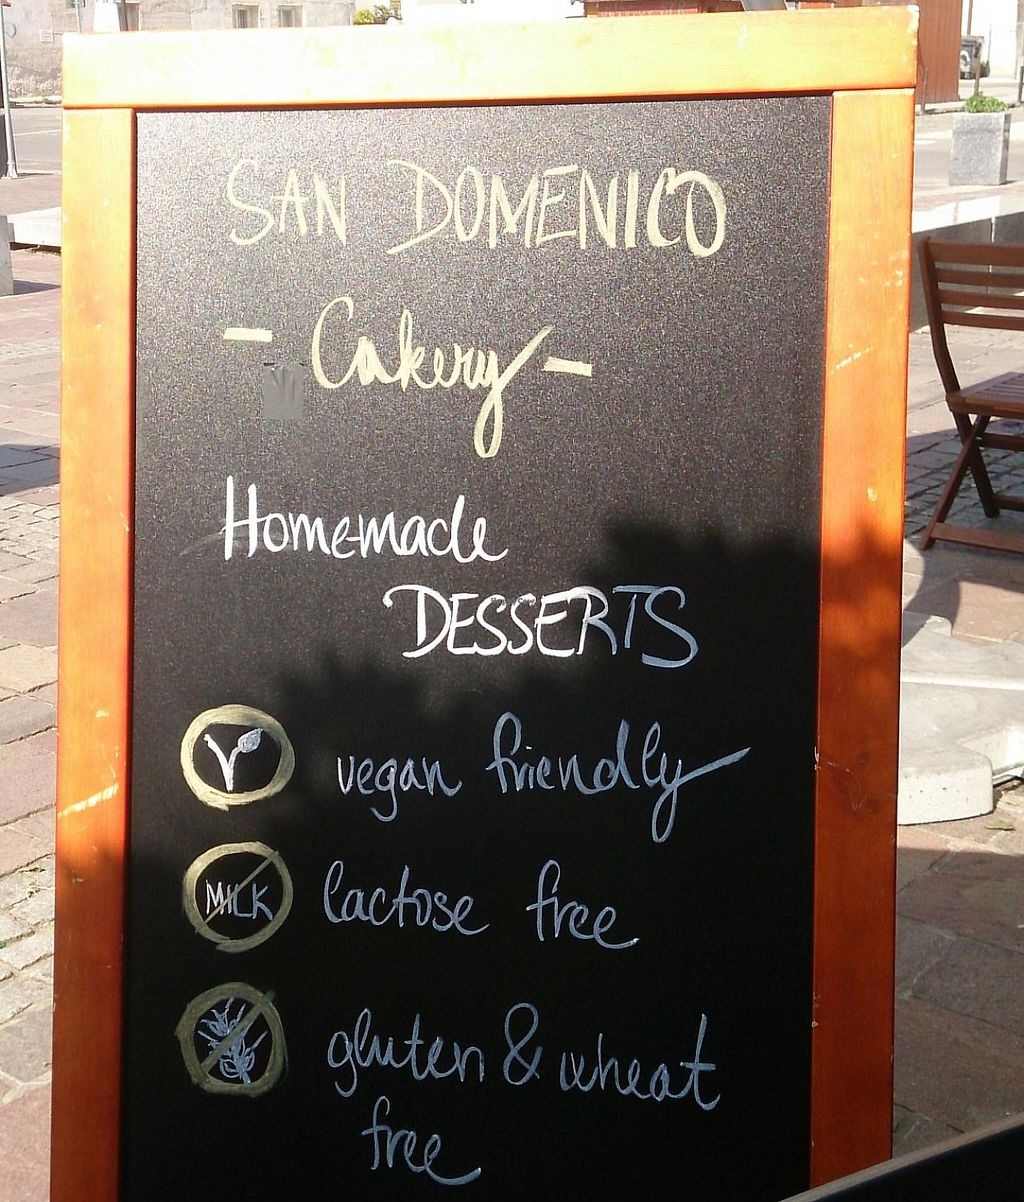 "Photo of San Domenico Caffe  by <a href=""/members/profile/Ruru"">Ruru</a> <br/>Gluten-free, vegan, and raw cake options <br/> August 26, 2014  - <a href='/contact/abuse/image/48999/243727'>Report</a>"